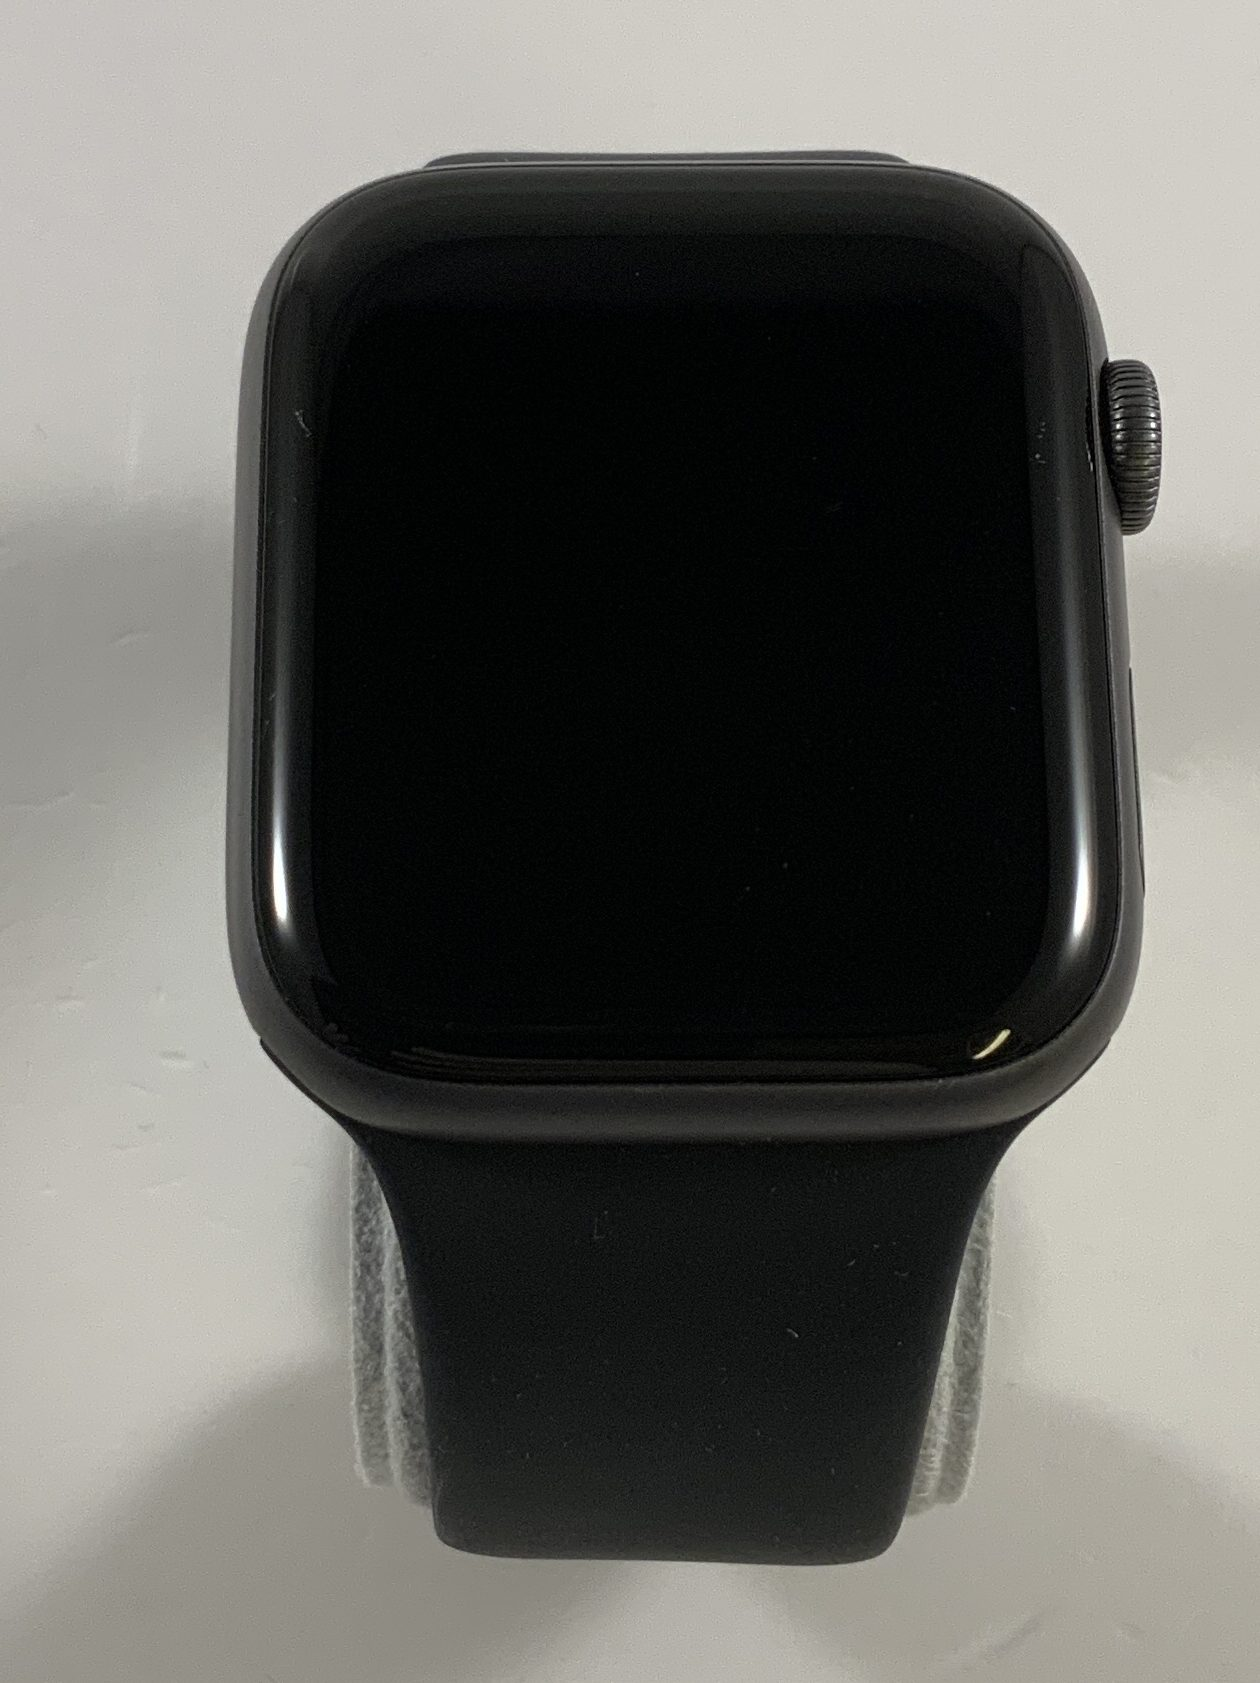 Watch Series 4 Aluminum Cellular (44mm), Space Gray, Black Sport Band, Afbeelding 1